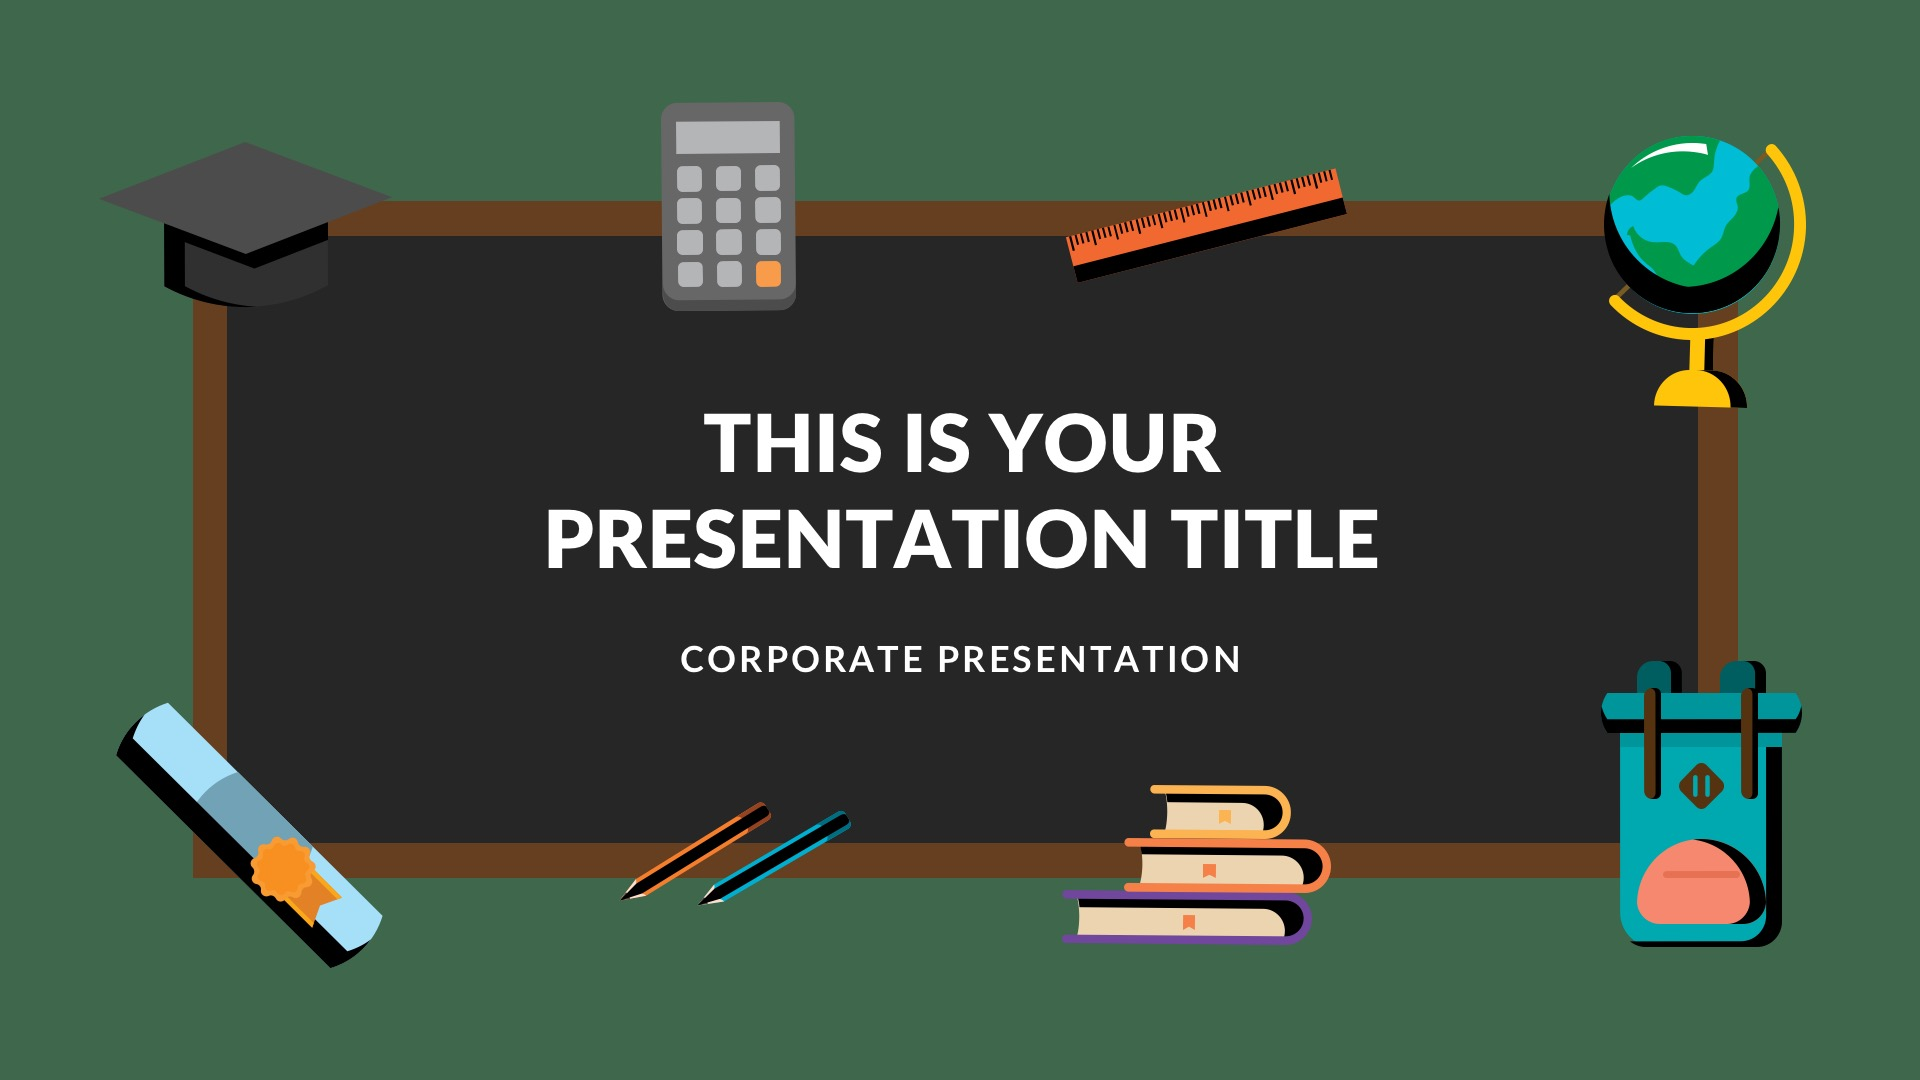 How To Make A Good PowerPoint Presentation For College - blogger.com